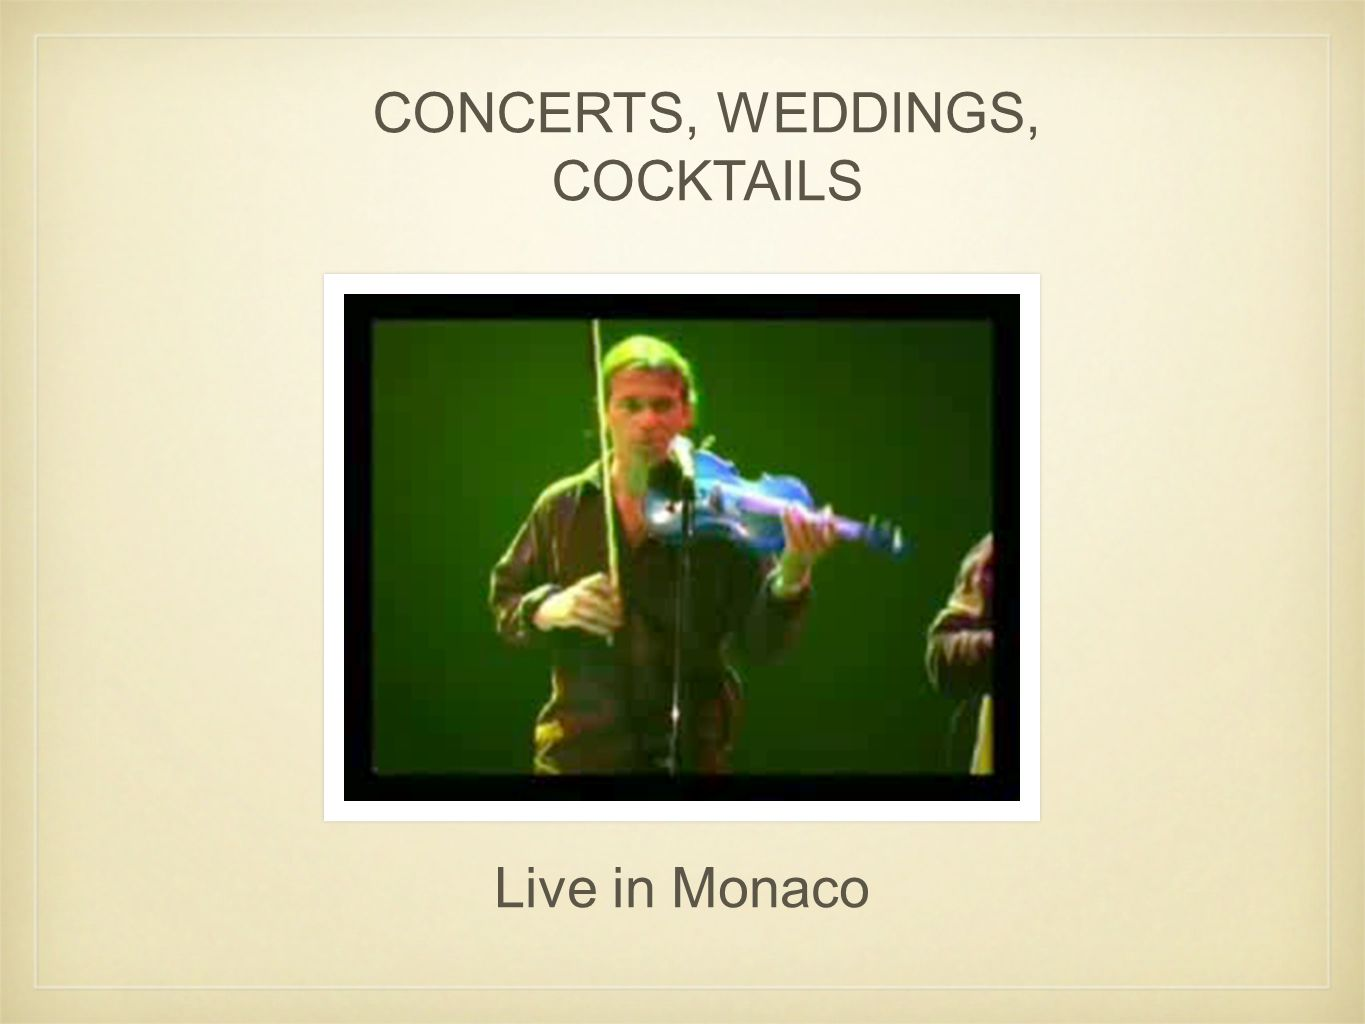 CONCERTS, WEDDINGS, COCKTAILS Live in Monaco